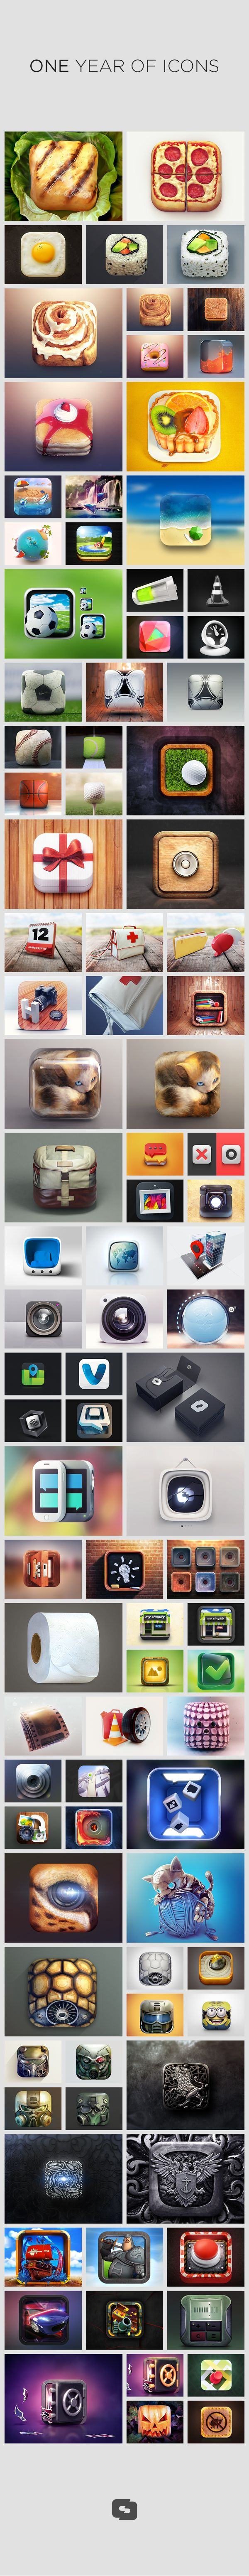 one year of icons. creativedash design studio.